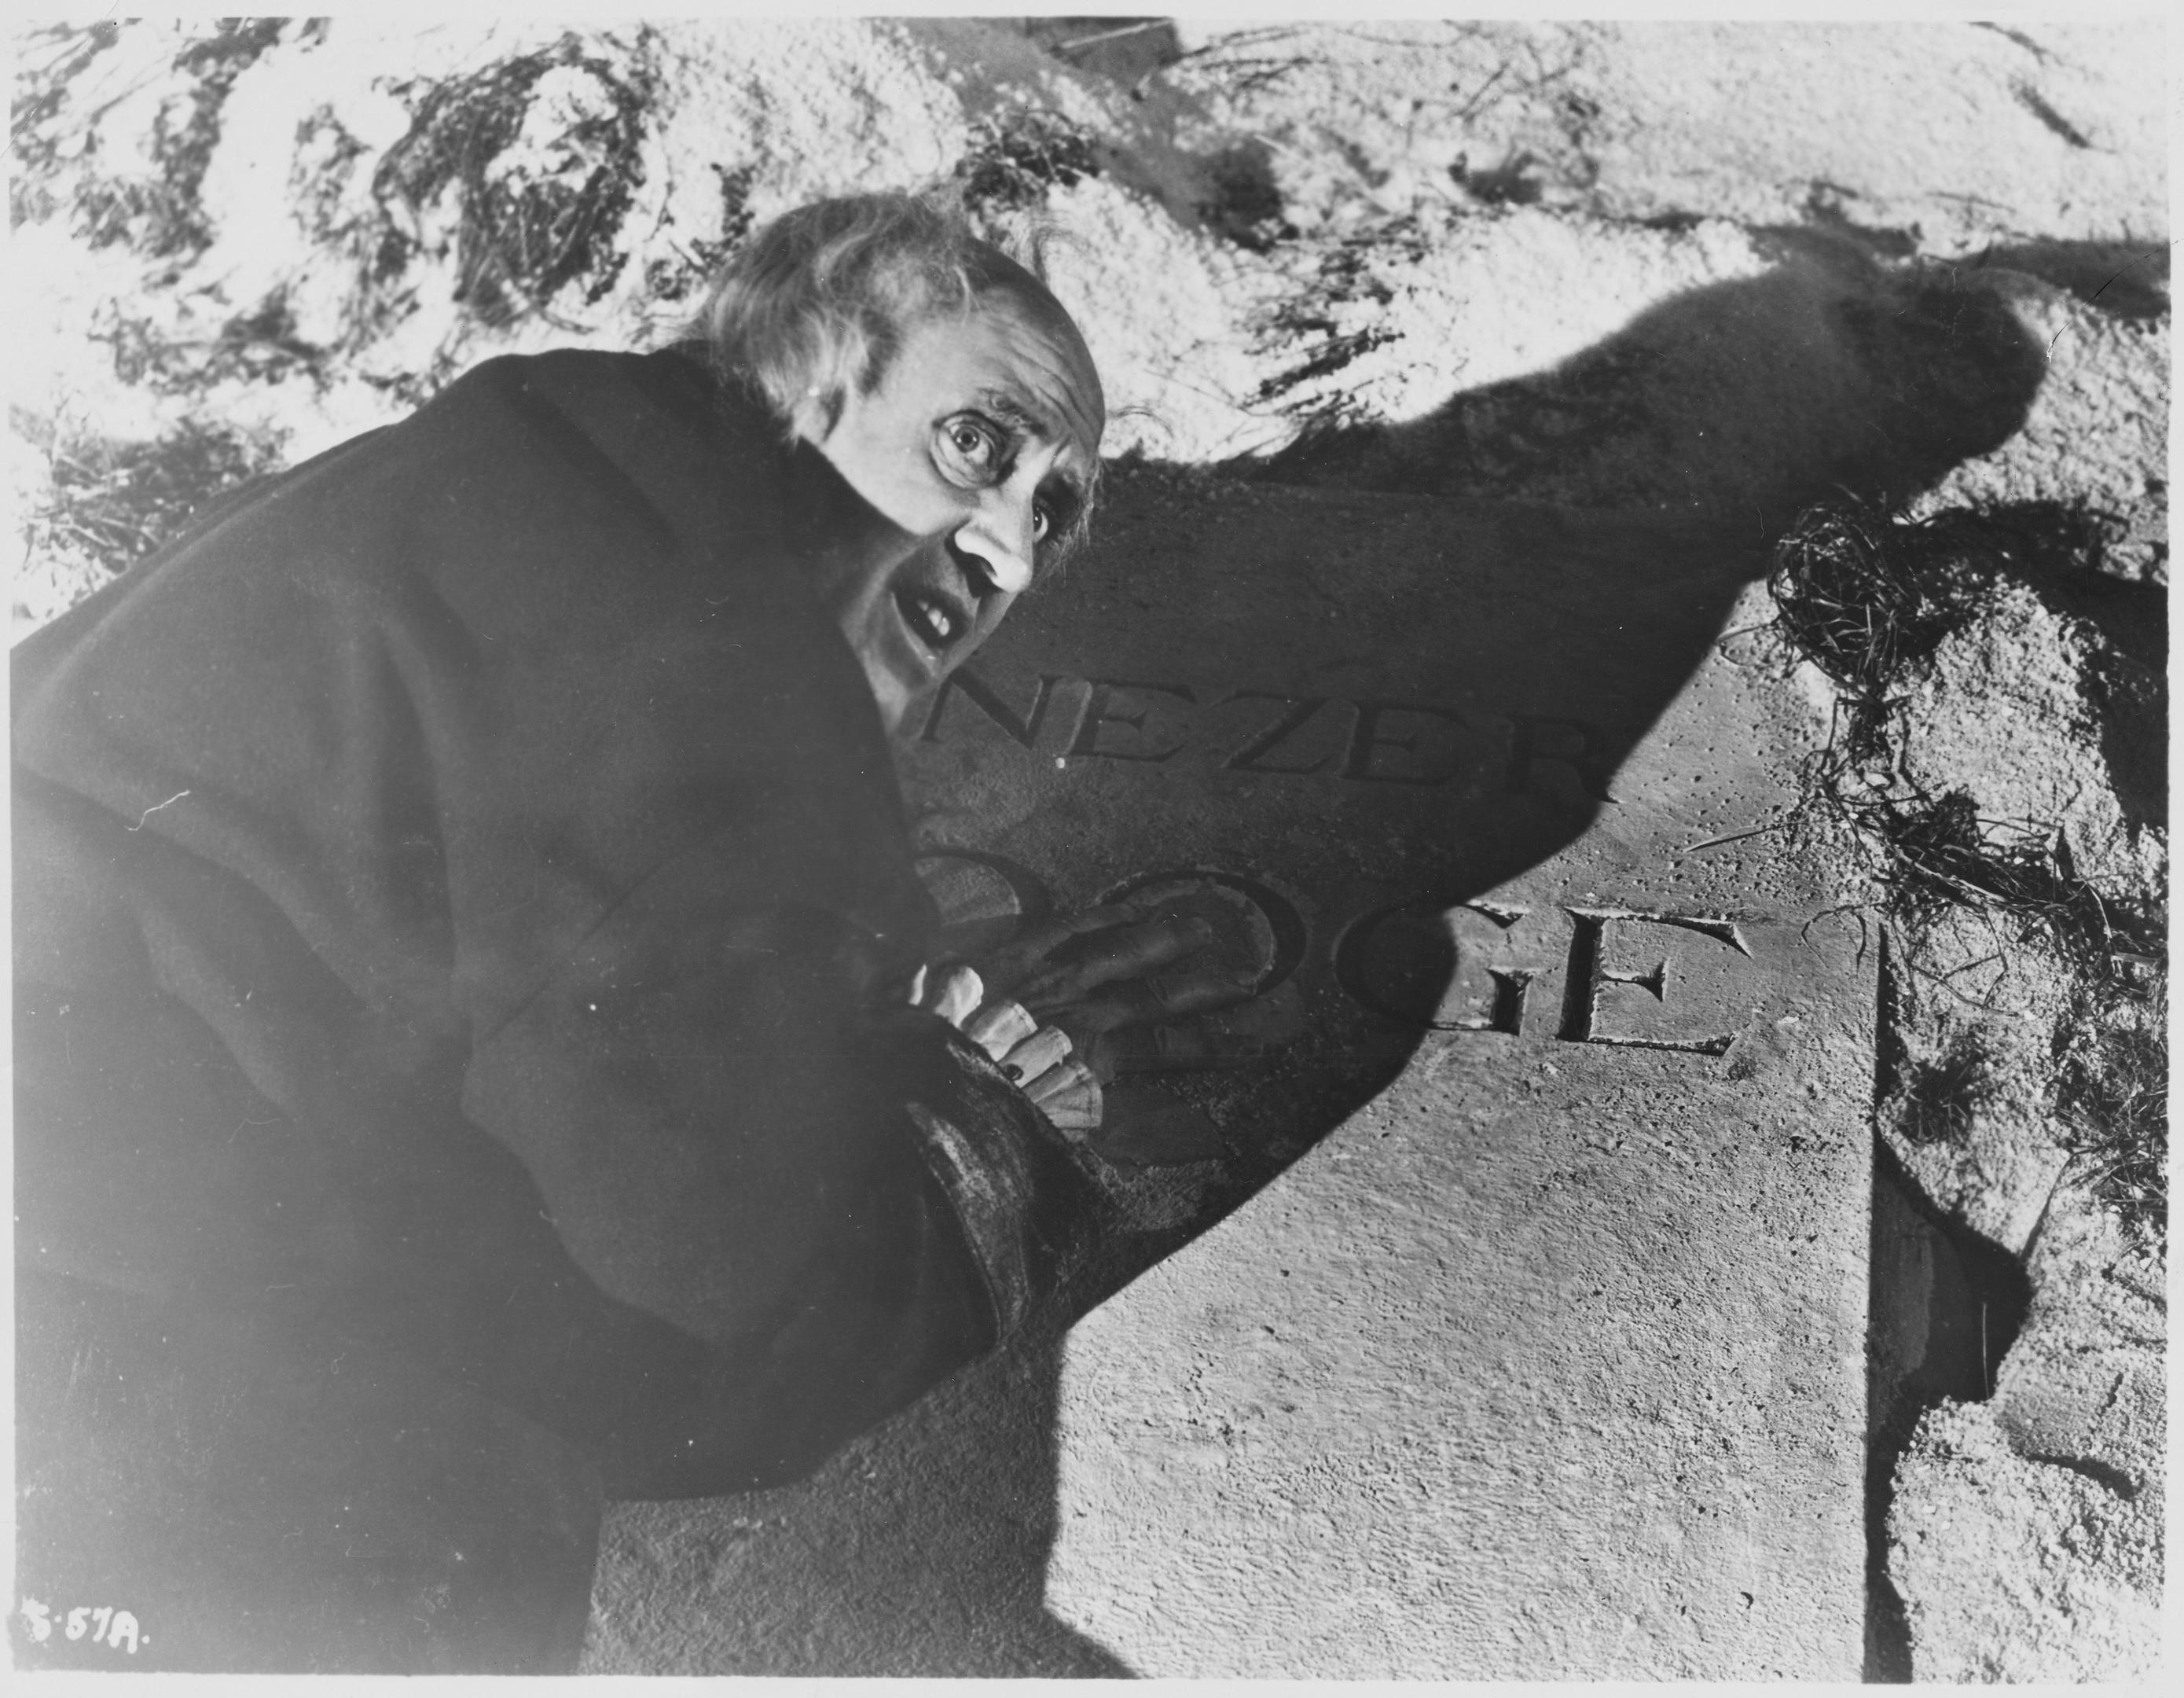 Ebenezer Scrooge (Alastair Sim) leans on his own grave marker, horrified at what may become if he doesn't change his ways, in A Christmas Carol 1951. (John Springer Collection/CORBIS/Corbis via Getty Images)